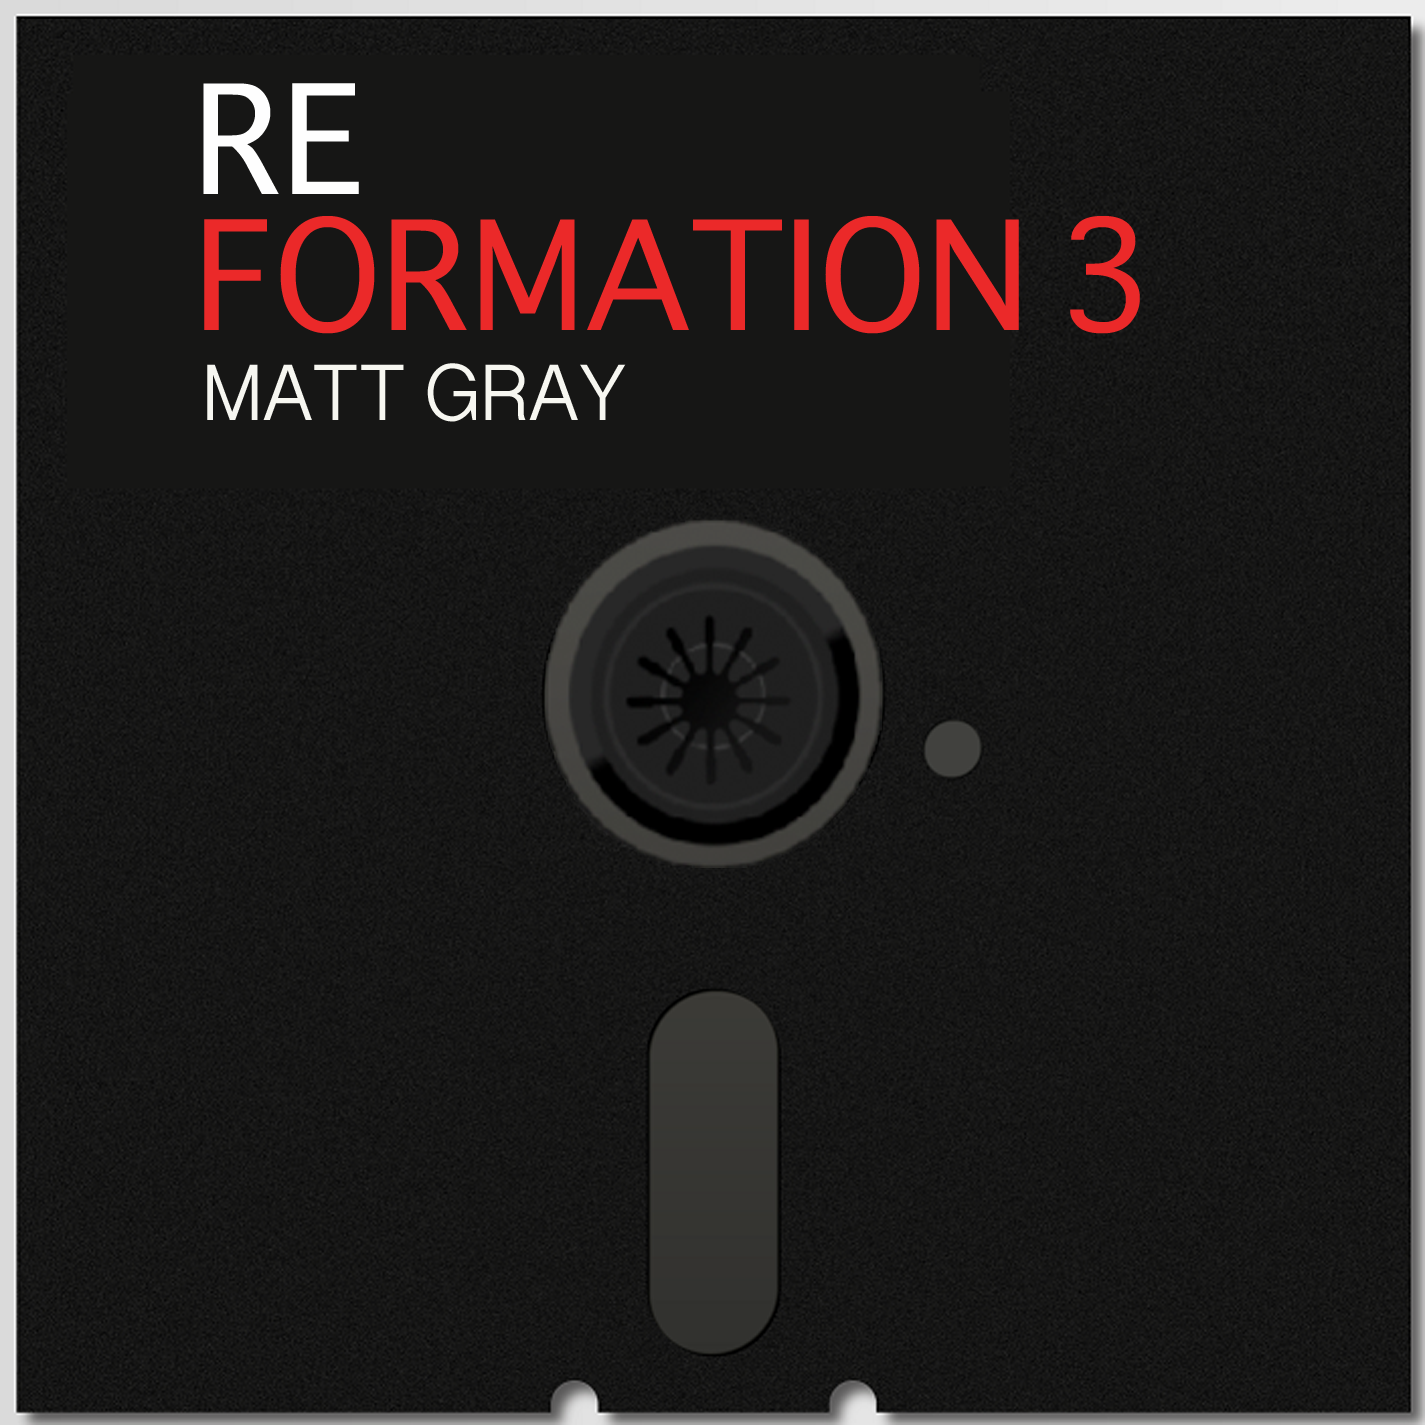 Reformation 3 © (C) 2020 6581 Records